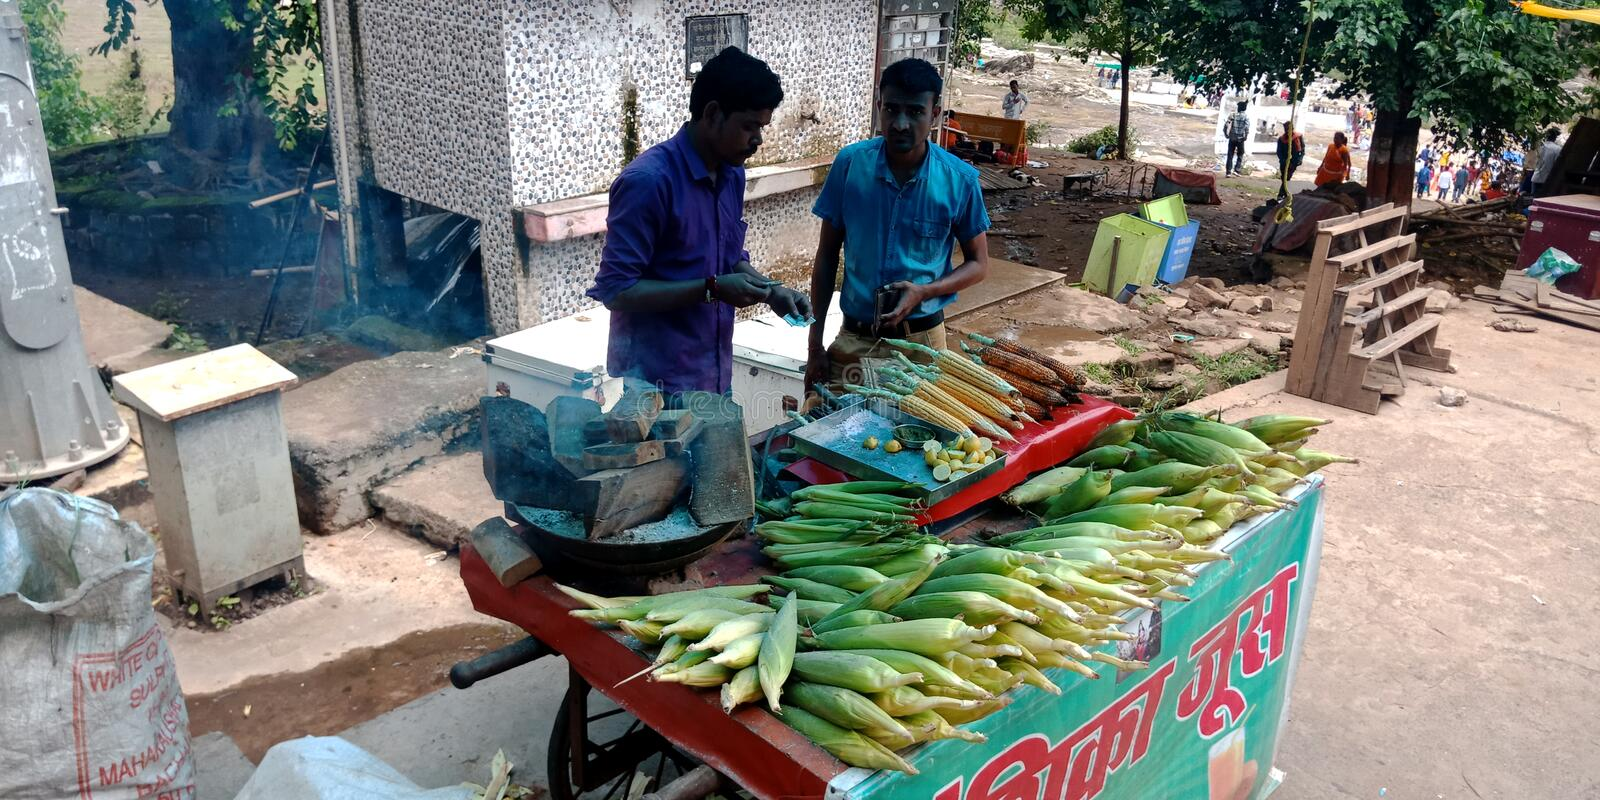 Sweetcorn street shop at indian village. Sweetcorn, vendor, street, village, indian, south, bakery, food, roster, famers stock photos